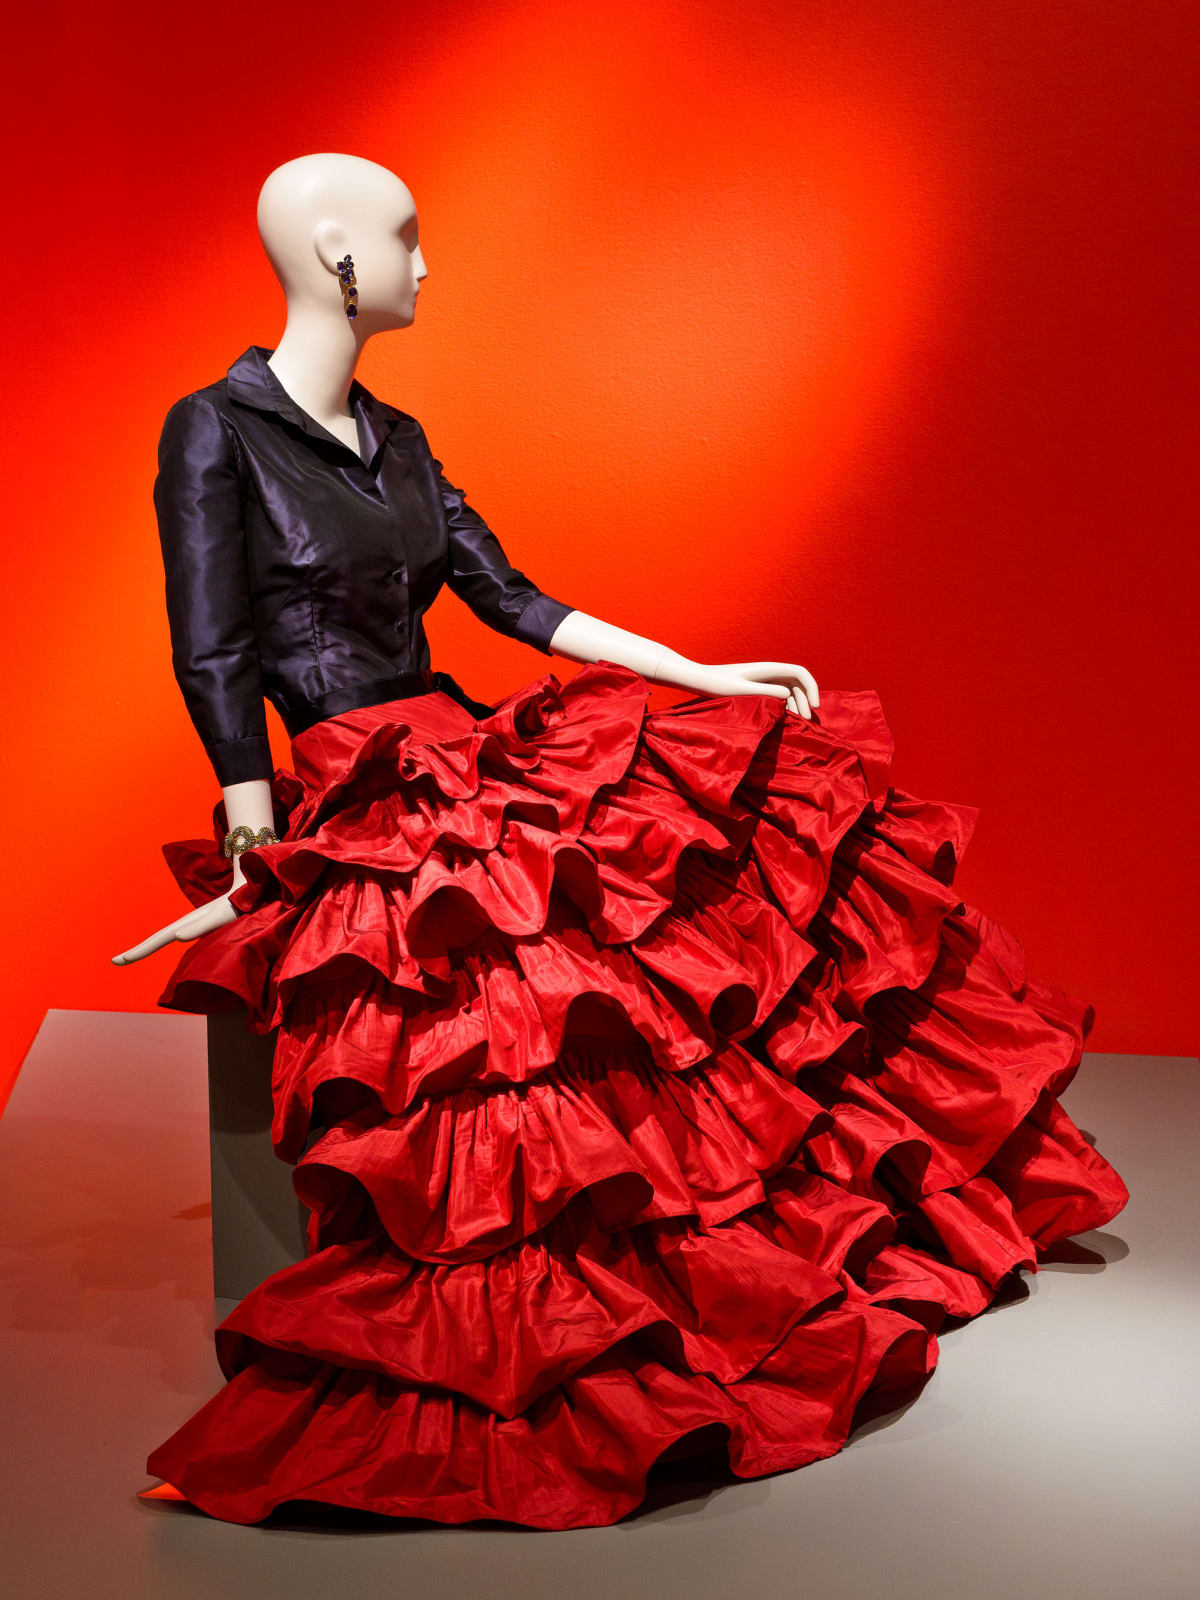 Oscar de la Renta, Custom Evening Ensemble, 2001, silk taffeta and silk satin, courtesy of Oscar de la Renta Archive (worn by Mica Ertegun to an event celebrating her 40th wedding anniversary to Ahmet Ertegun, 2001